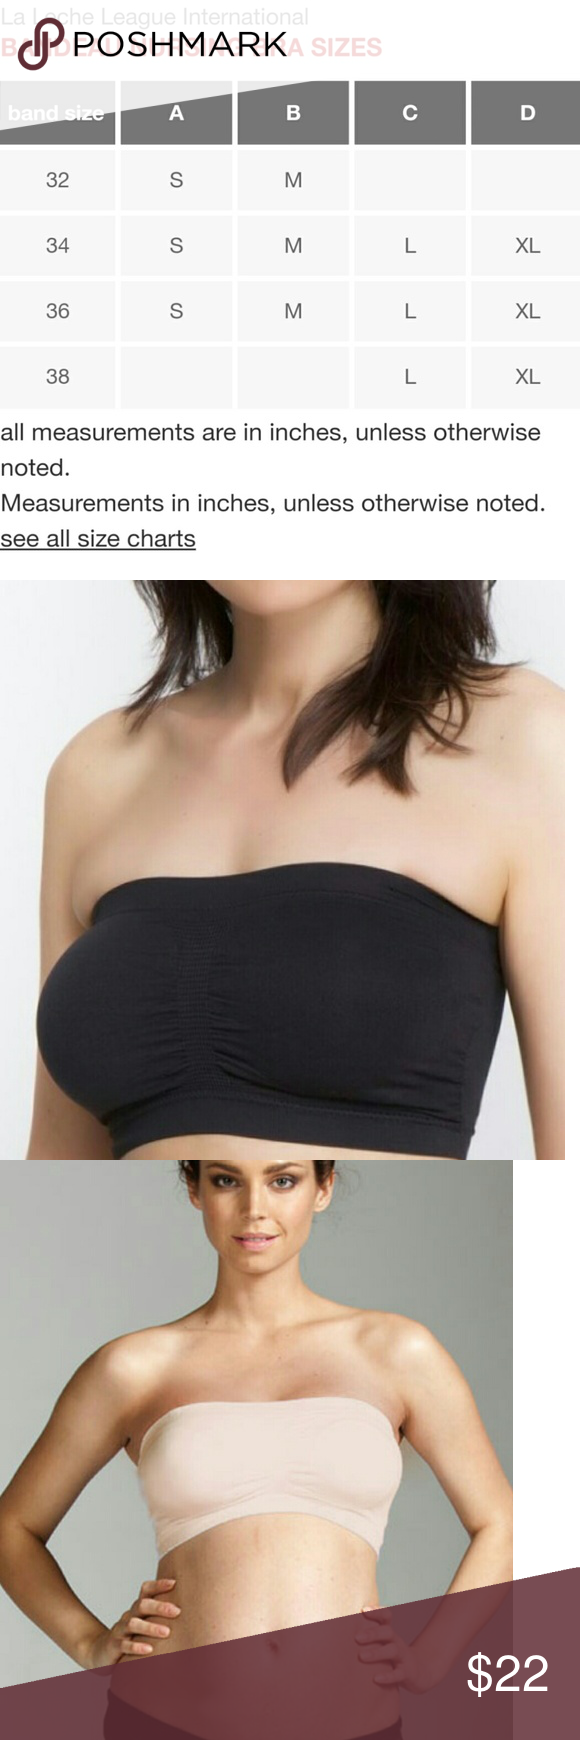 5f8a524aeff3e NEW Nursing Bra Strapless La Leche League?Black S Wear it pregnant or not,  this oh-so - comfortable strapless nursing bra from La Leche League  actually ...